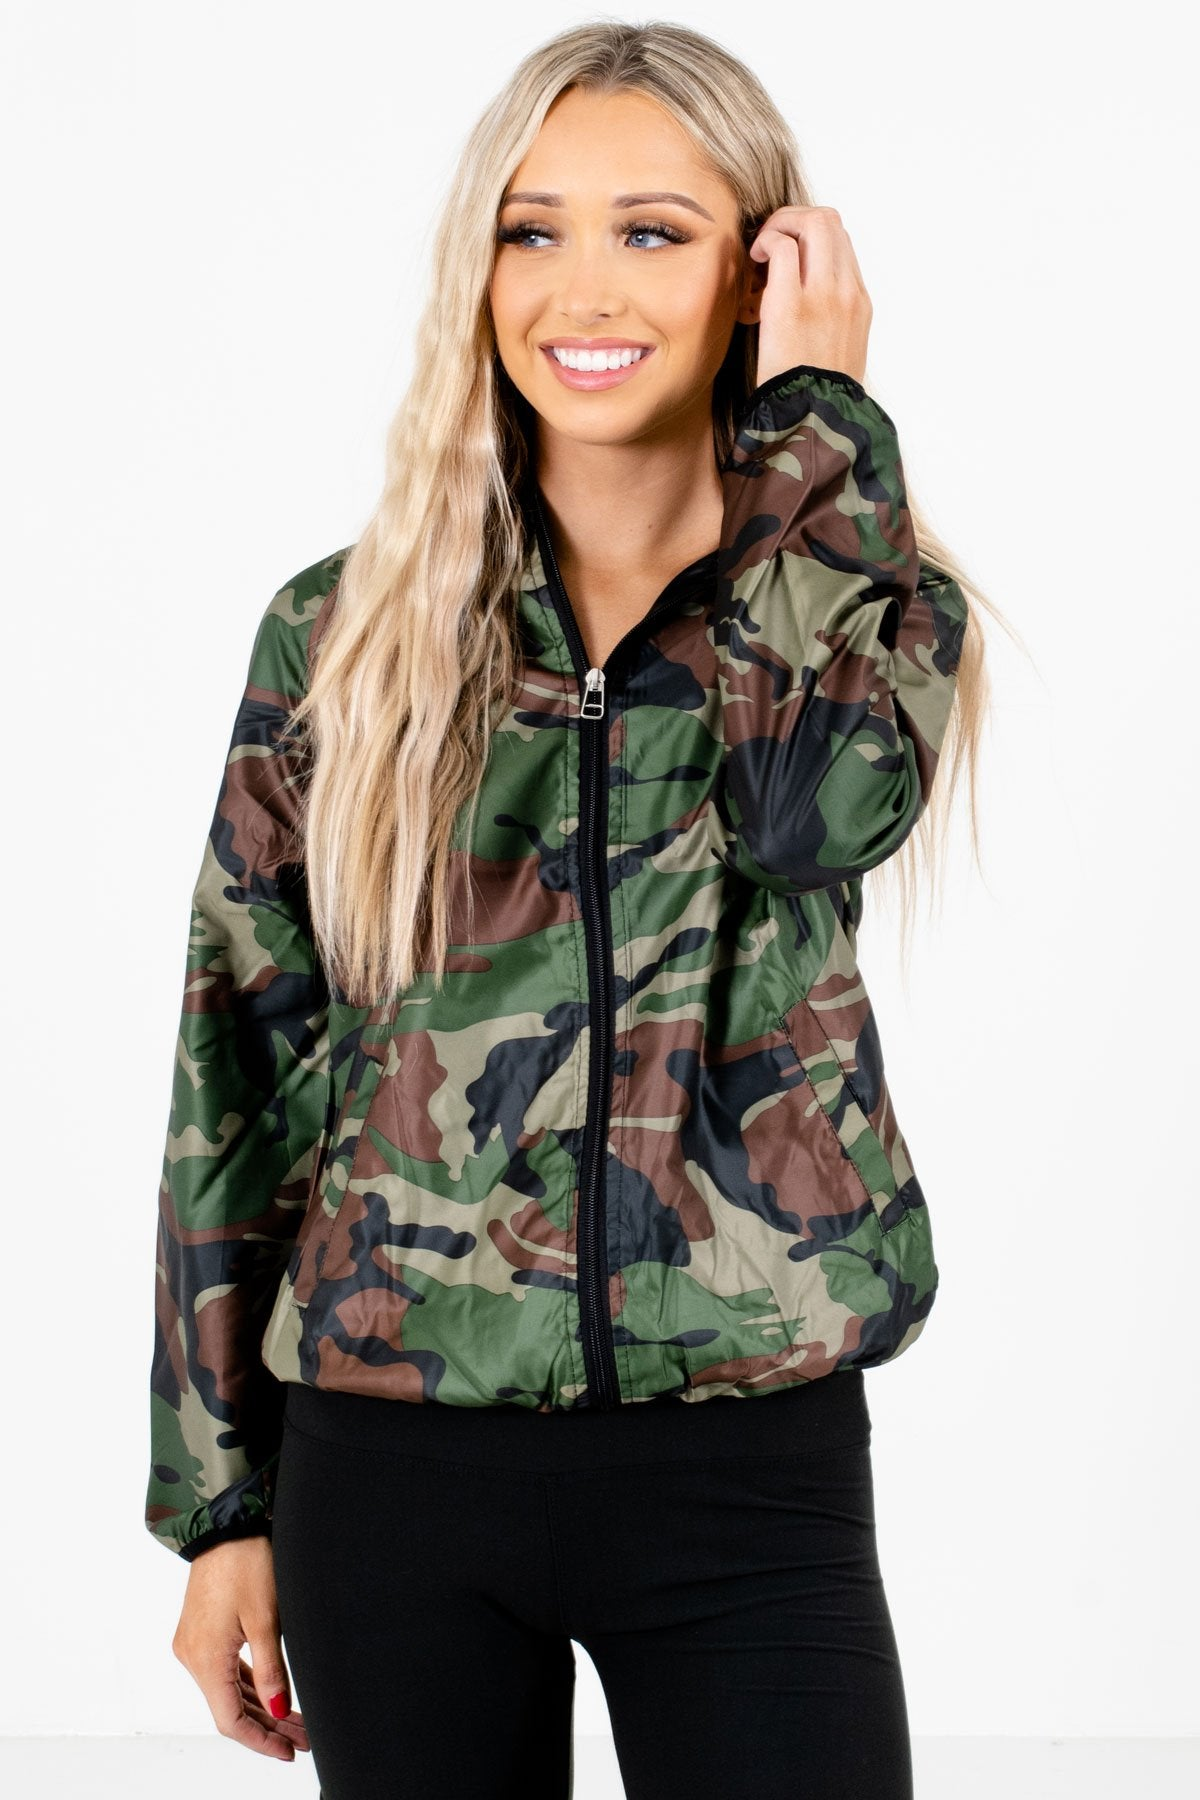 Green Camo Print Boutique Jackets for Women